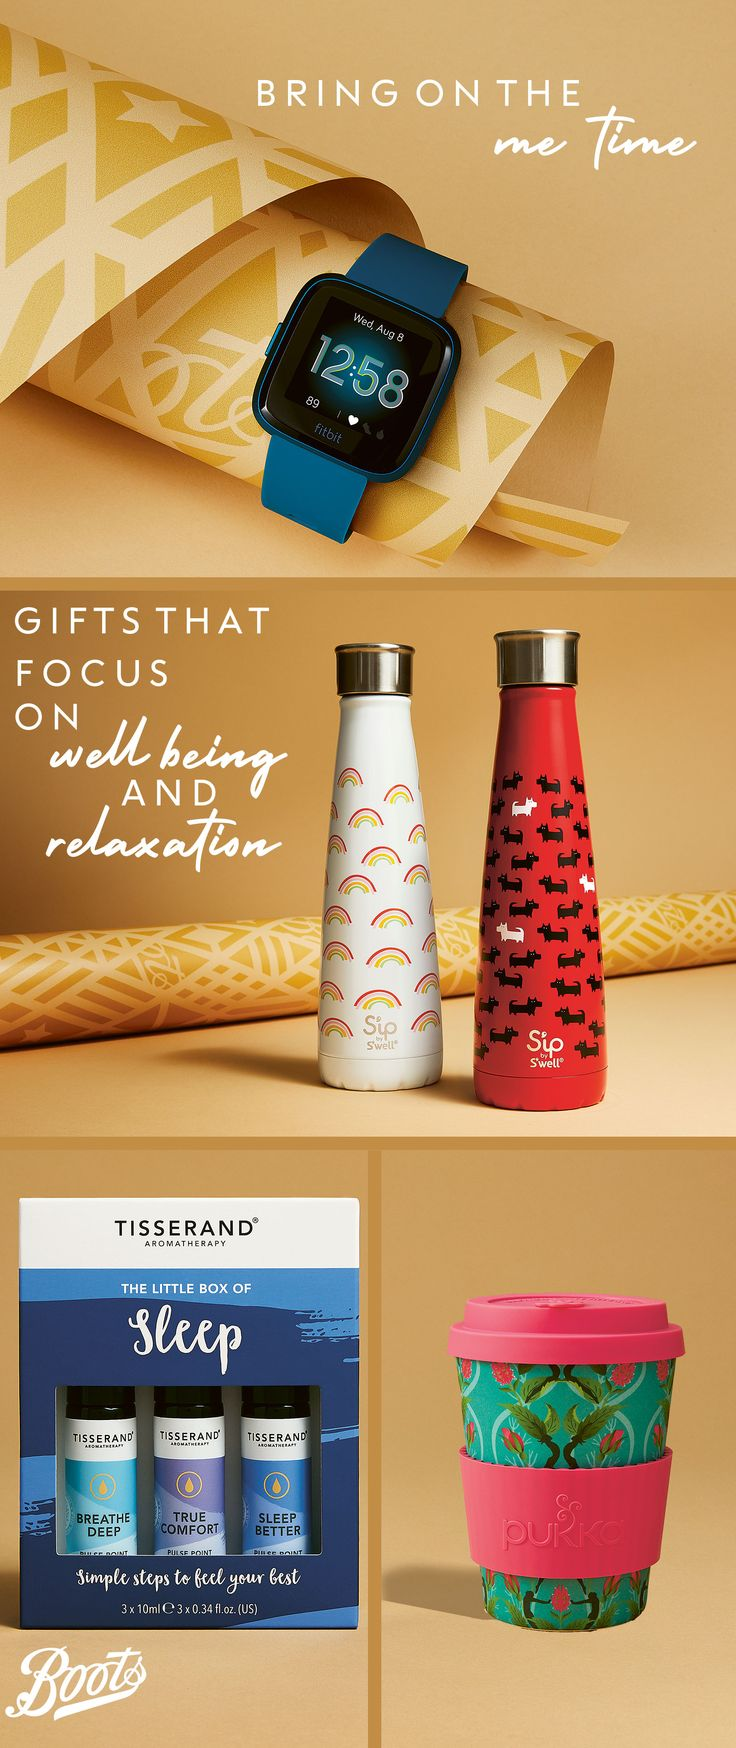 Christmas gifts that focus on well being and relaxation